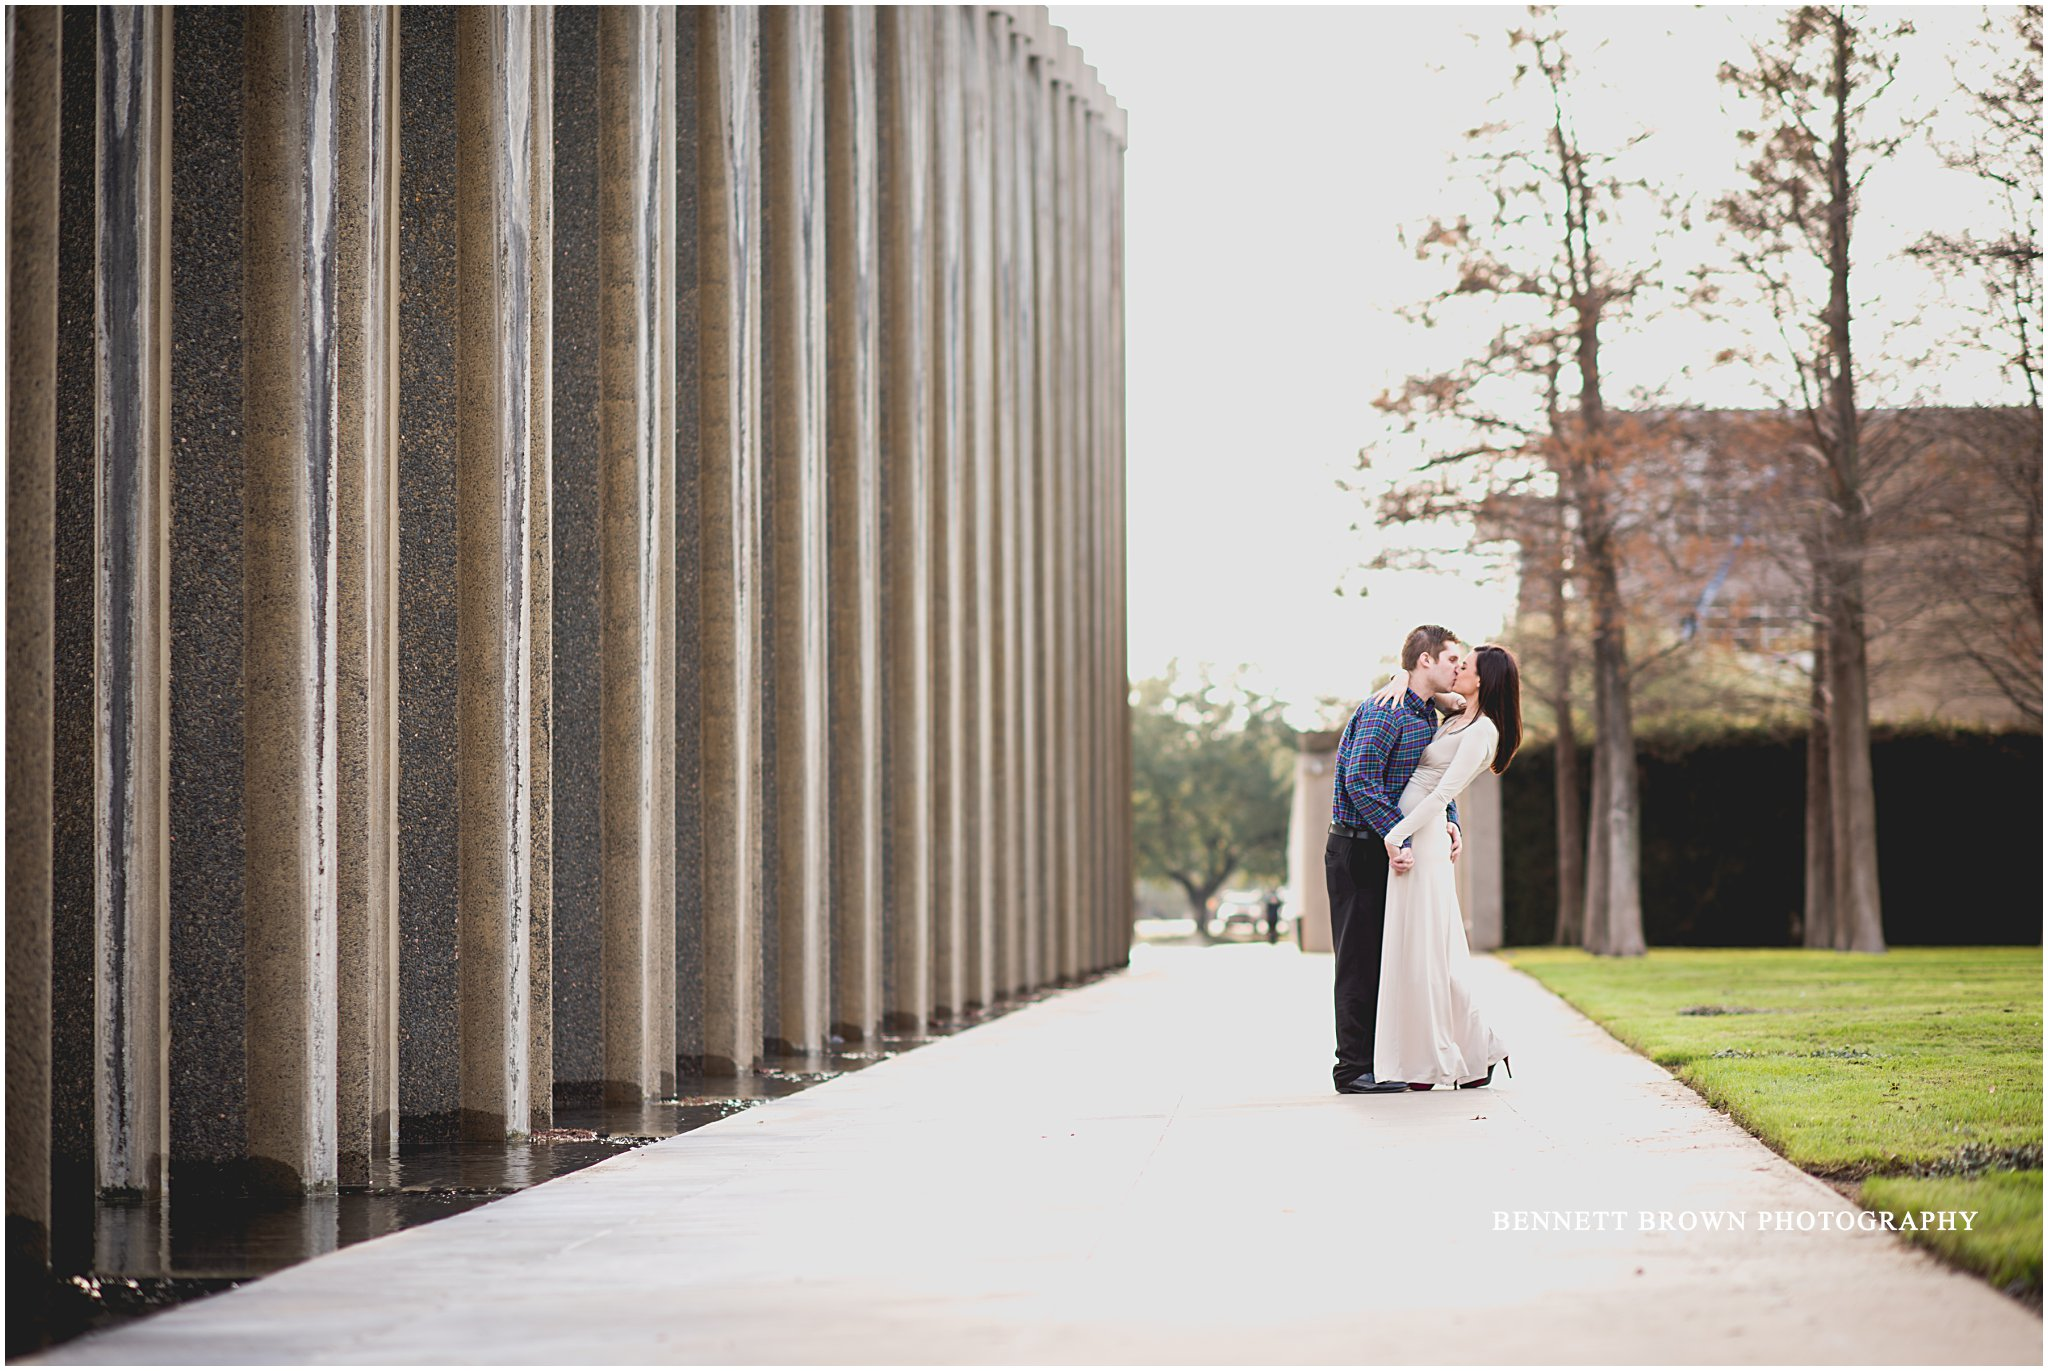 Houston Texas Bennett Brown Photography engagement session wedding photography bride groom